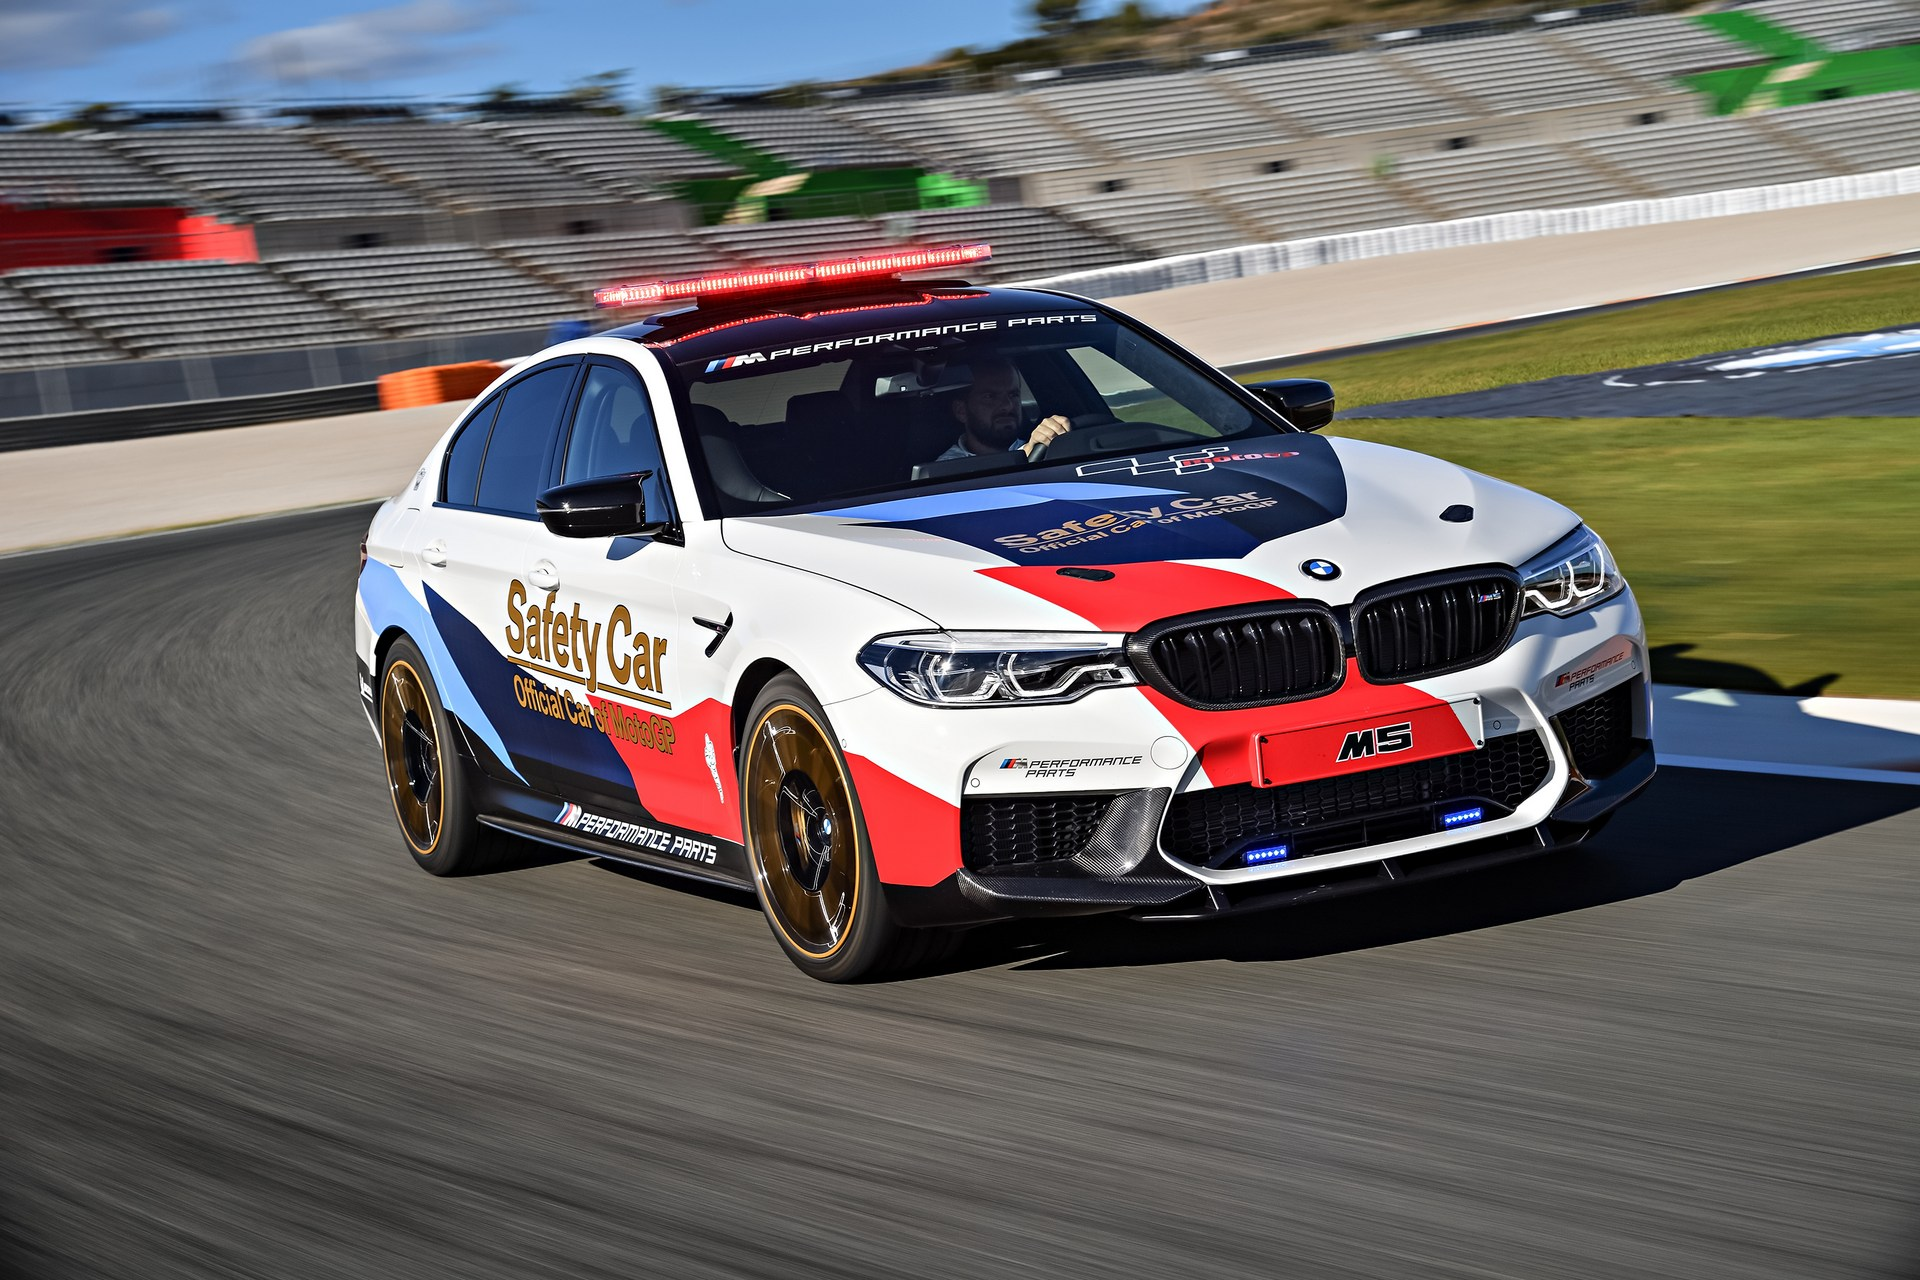 BMW_M5_Safety_Car_0006